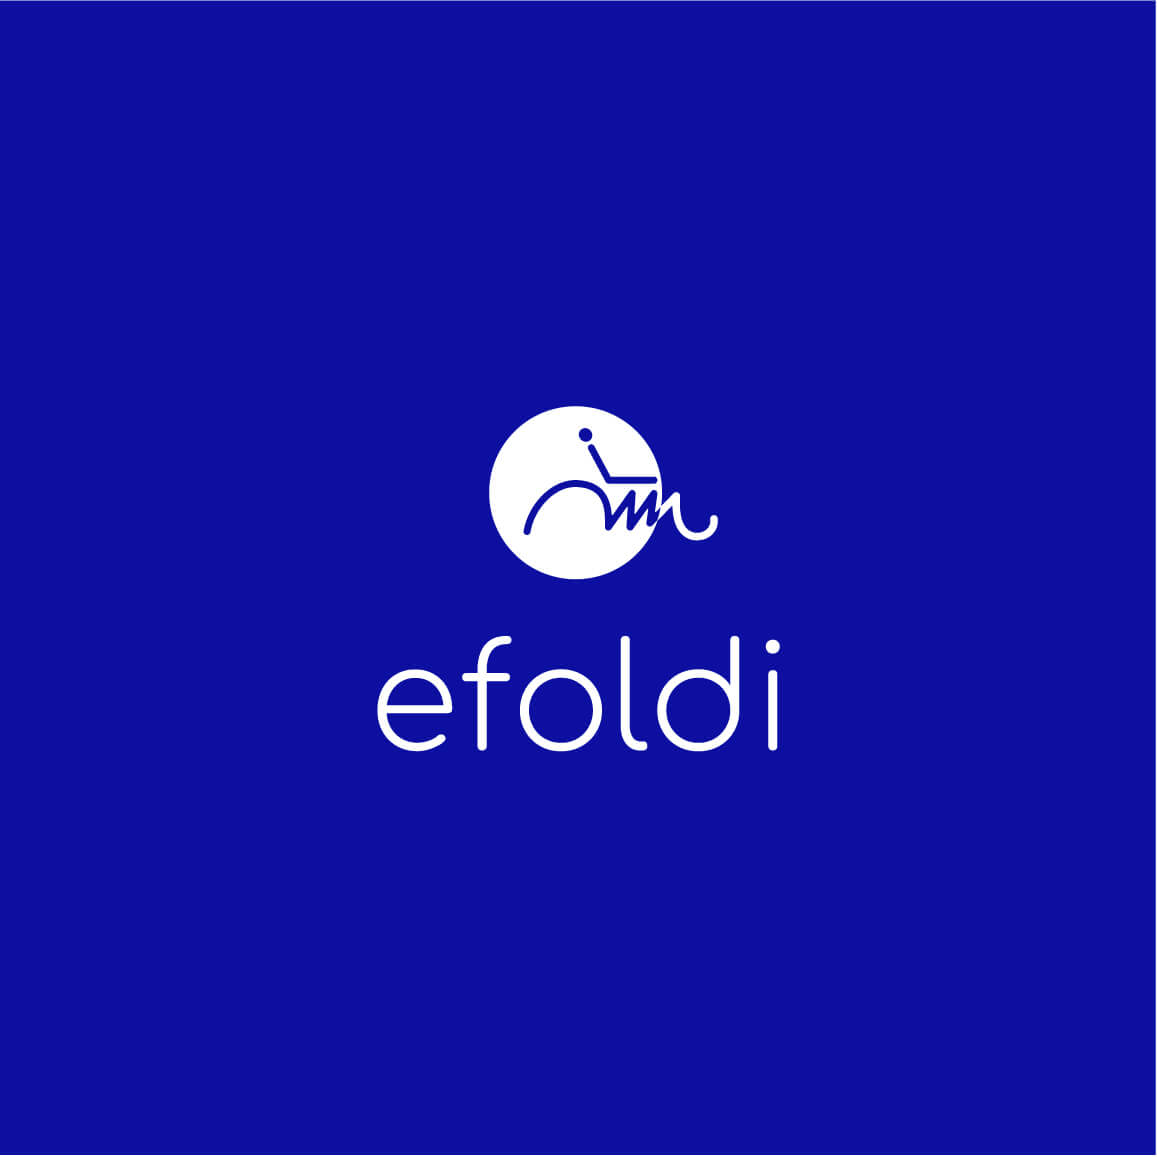 Serkan_Ferah_Branding_Pitching_Design_London_Efoldi-Case-Study.jpg